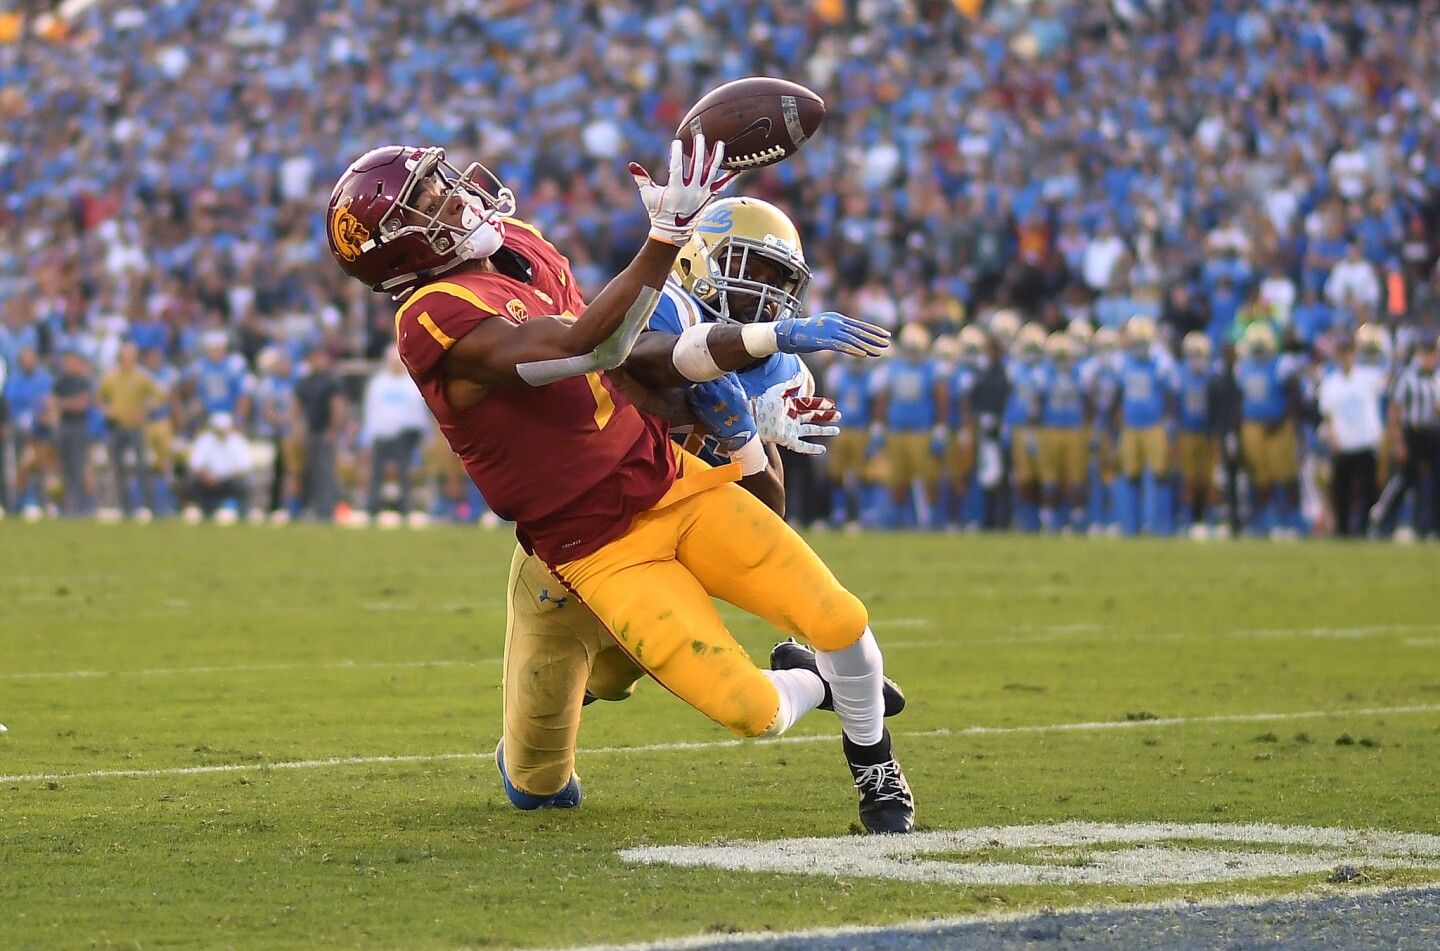 USC receiver Velus Jones Jr. can't make the catch near the end zone as Bruins defensive back Adarius Pickett defends late in the fourth quarter Saturday at the Rose Bowl.